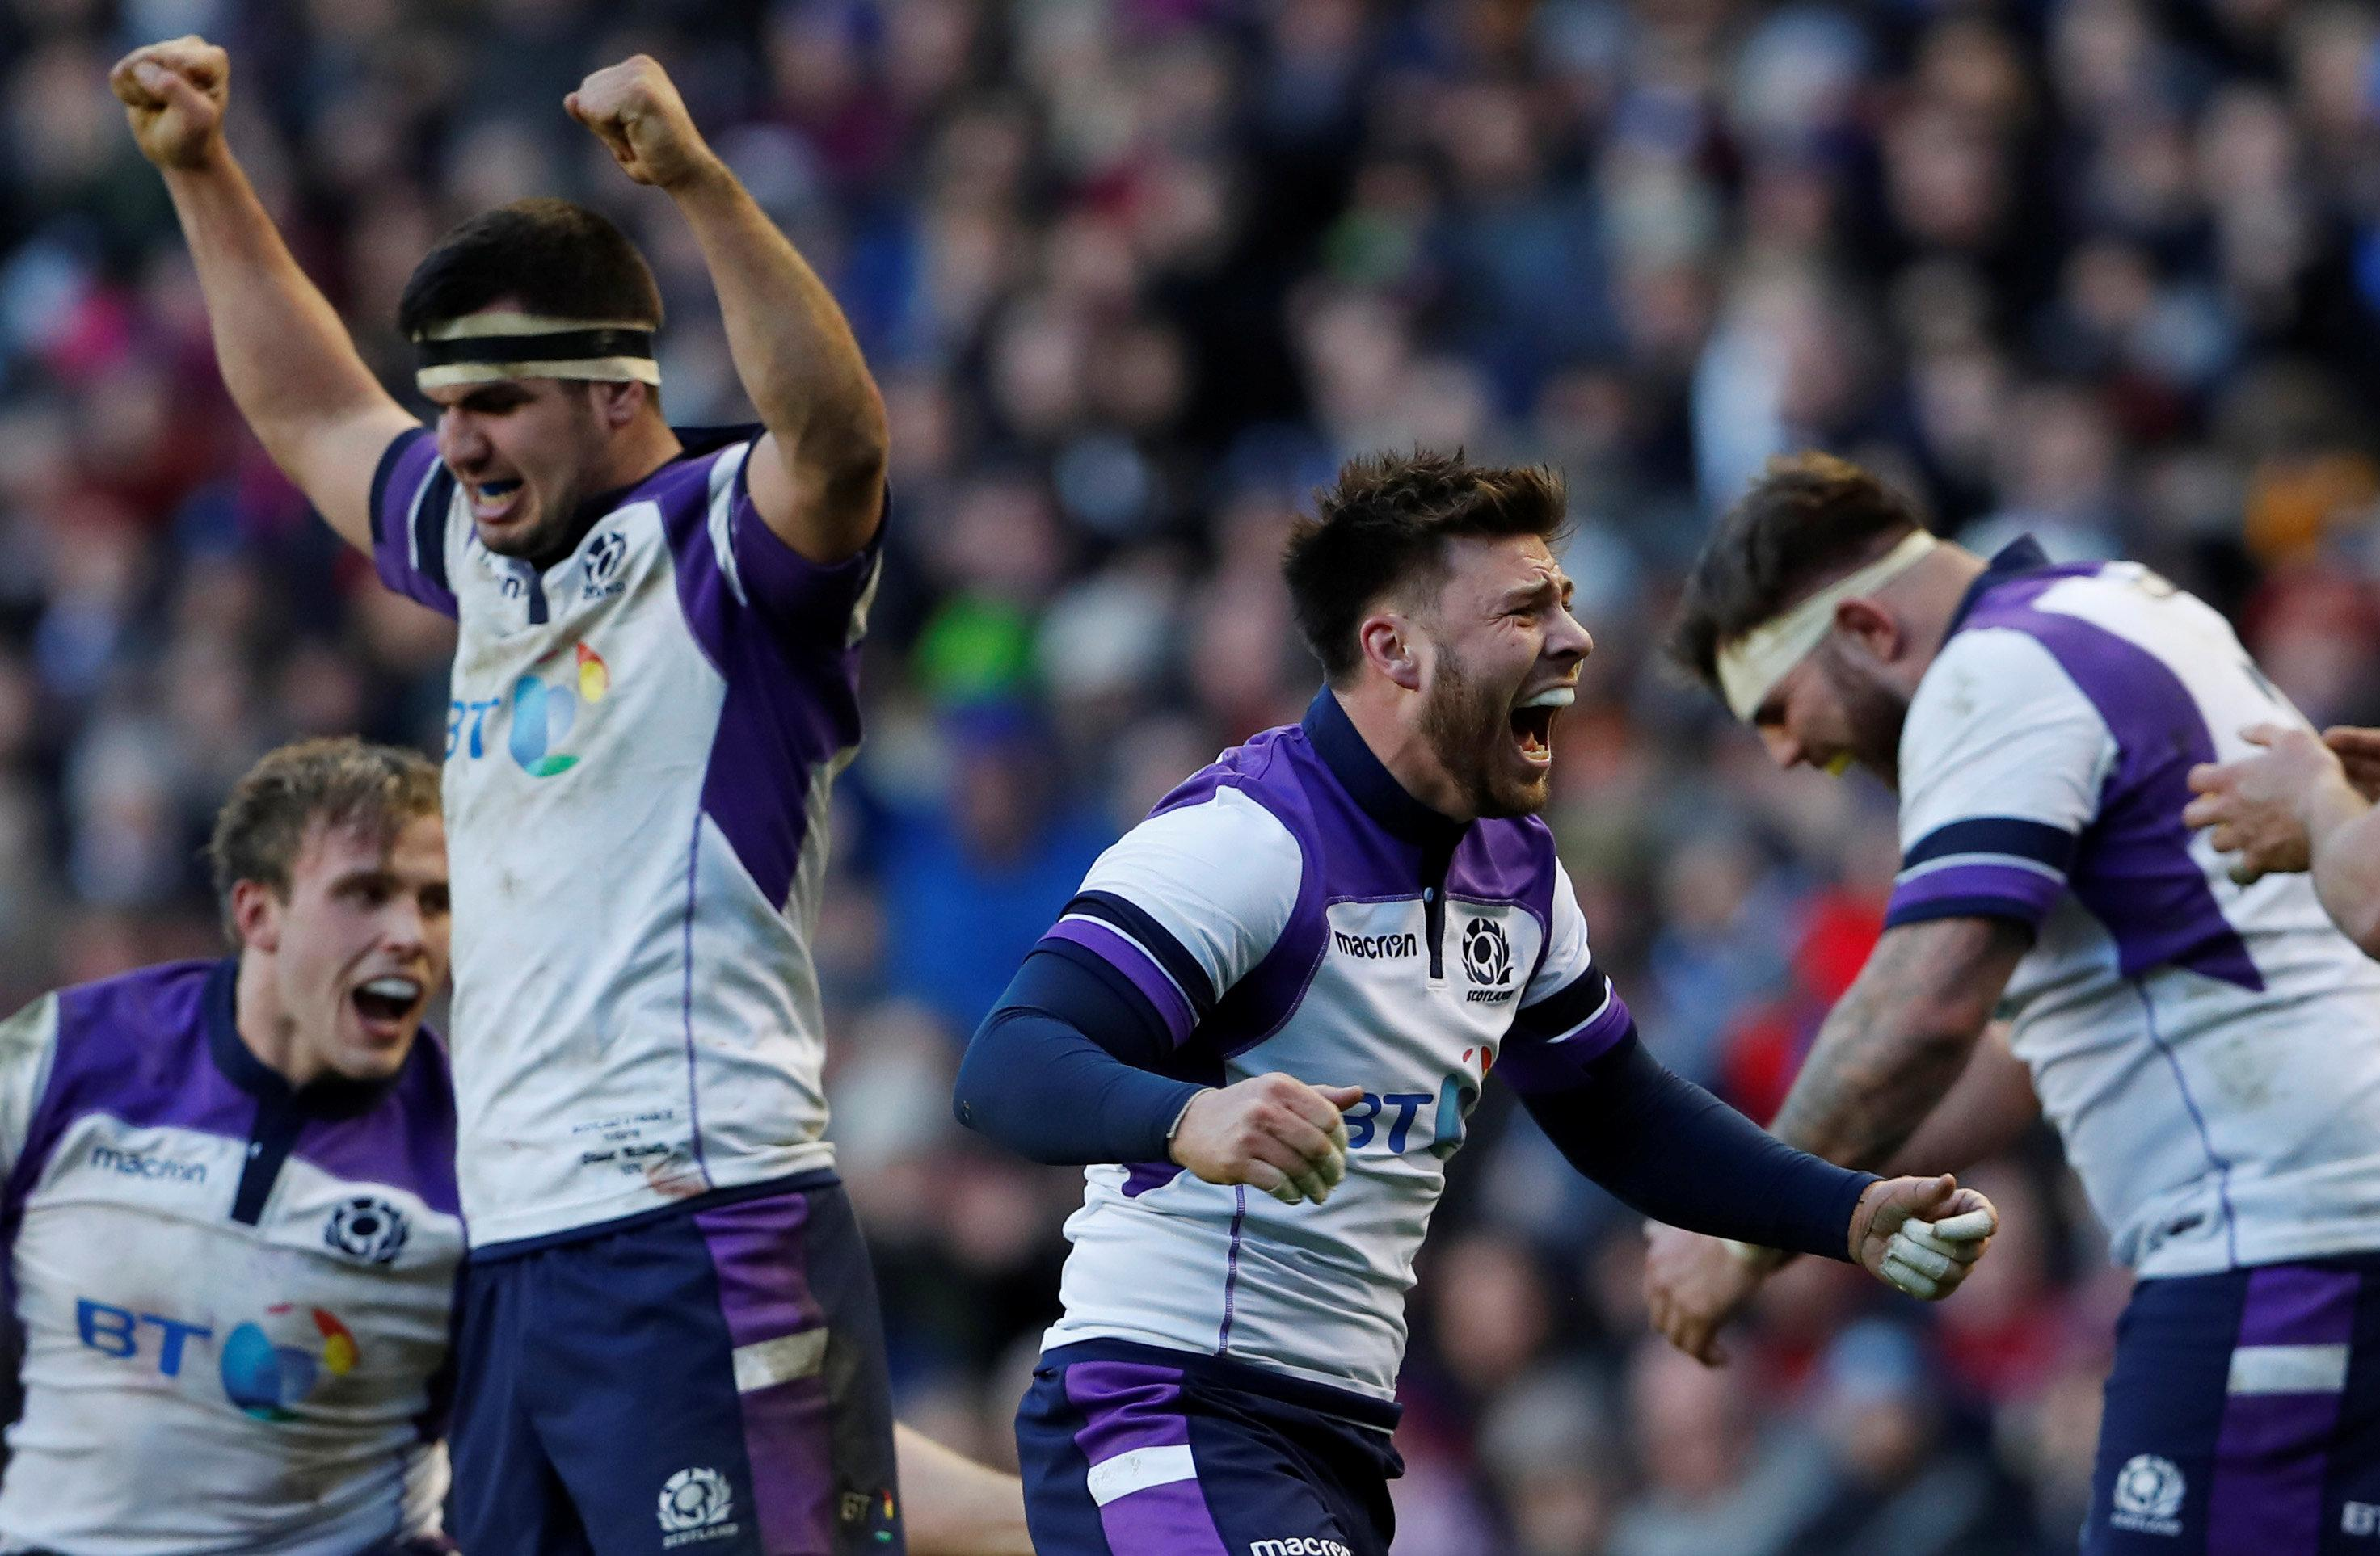 Scotland will look to put themselves in Six Nations contention with a win over England on Saturday